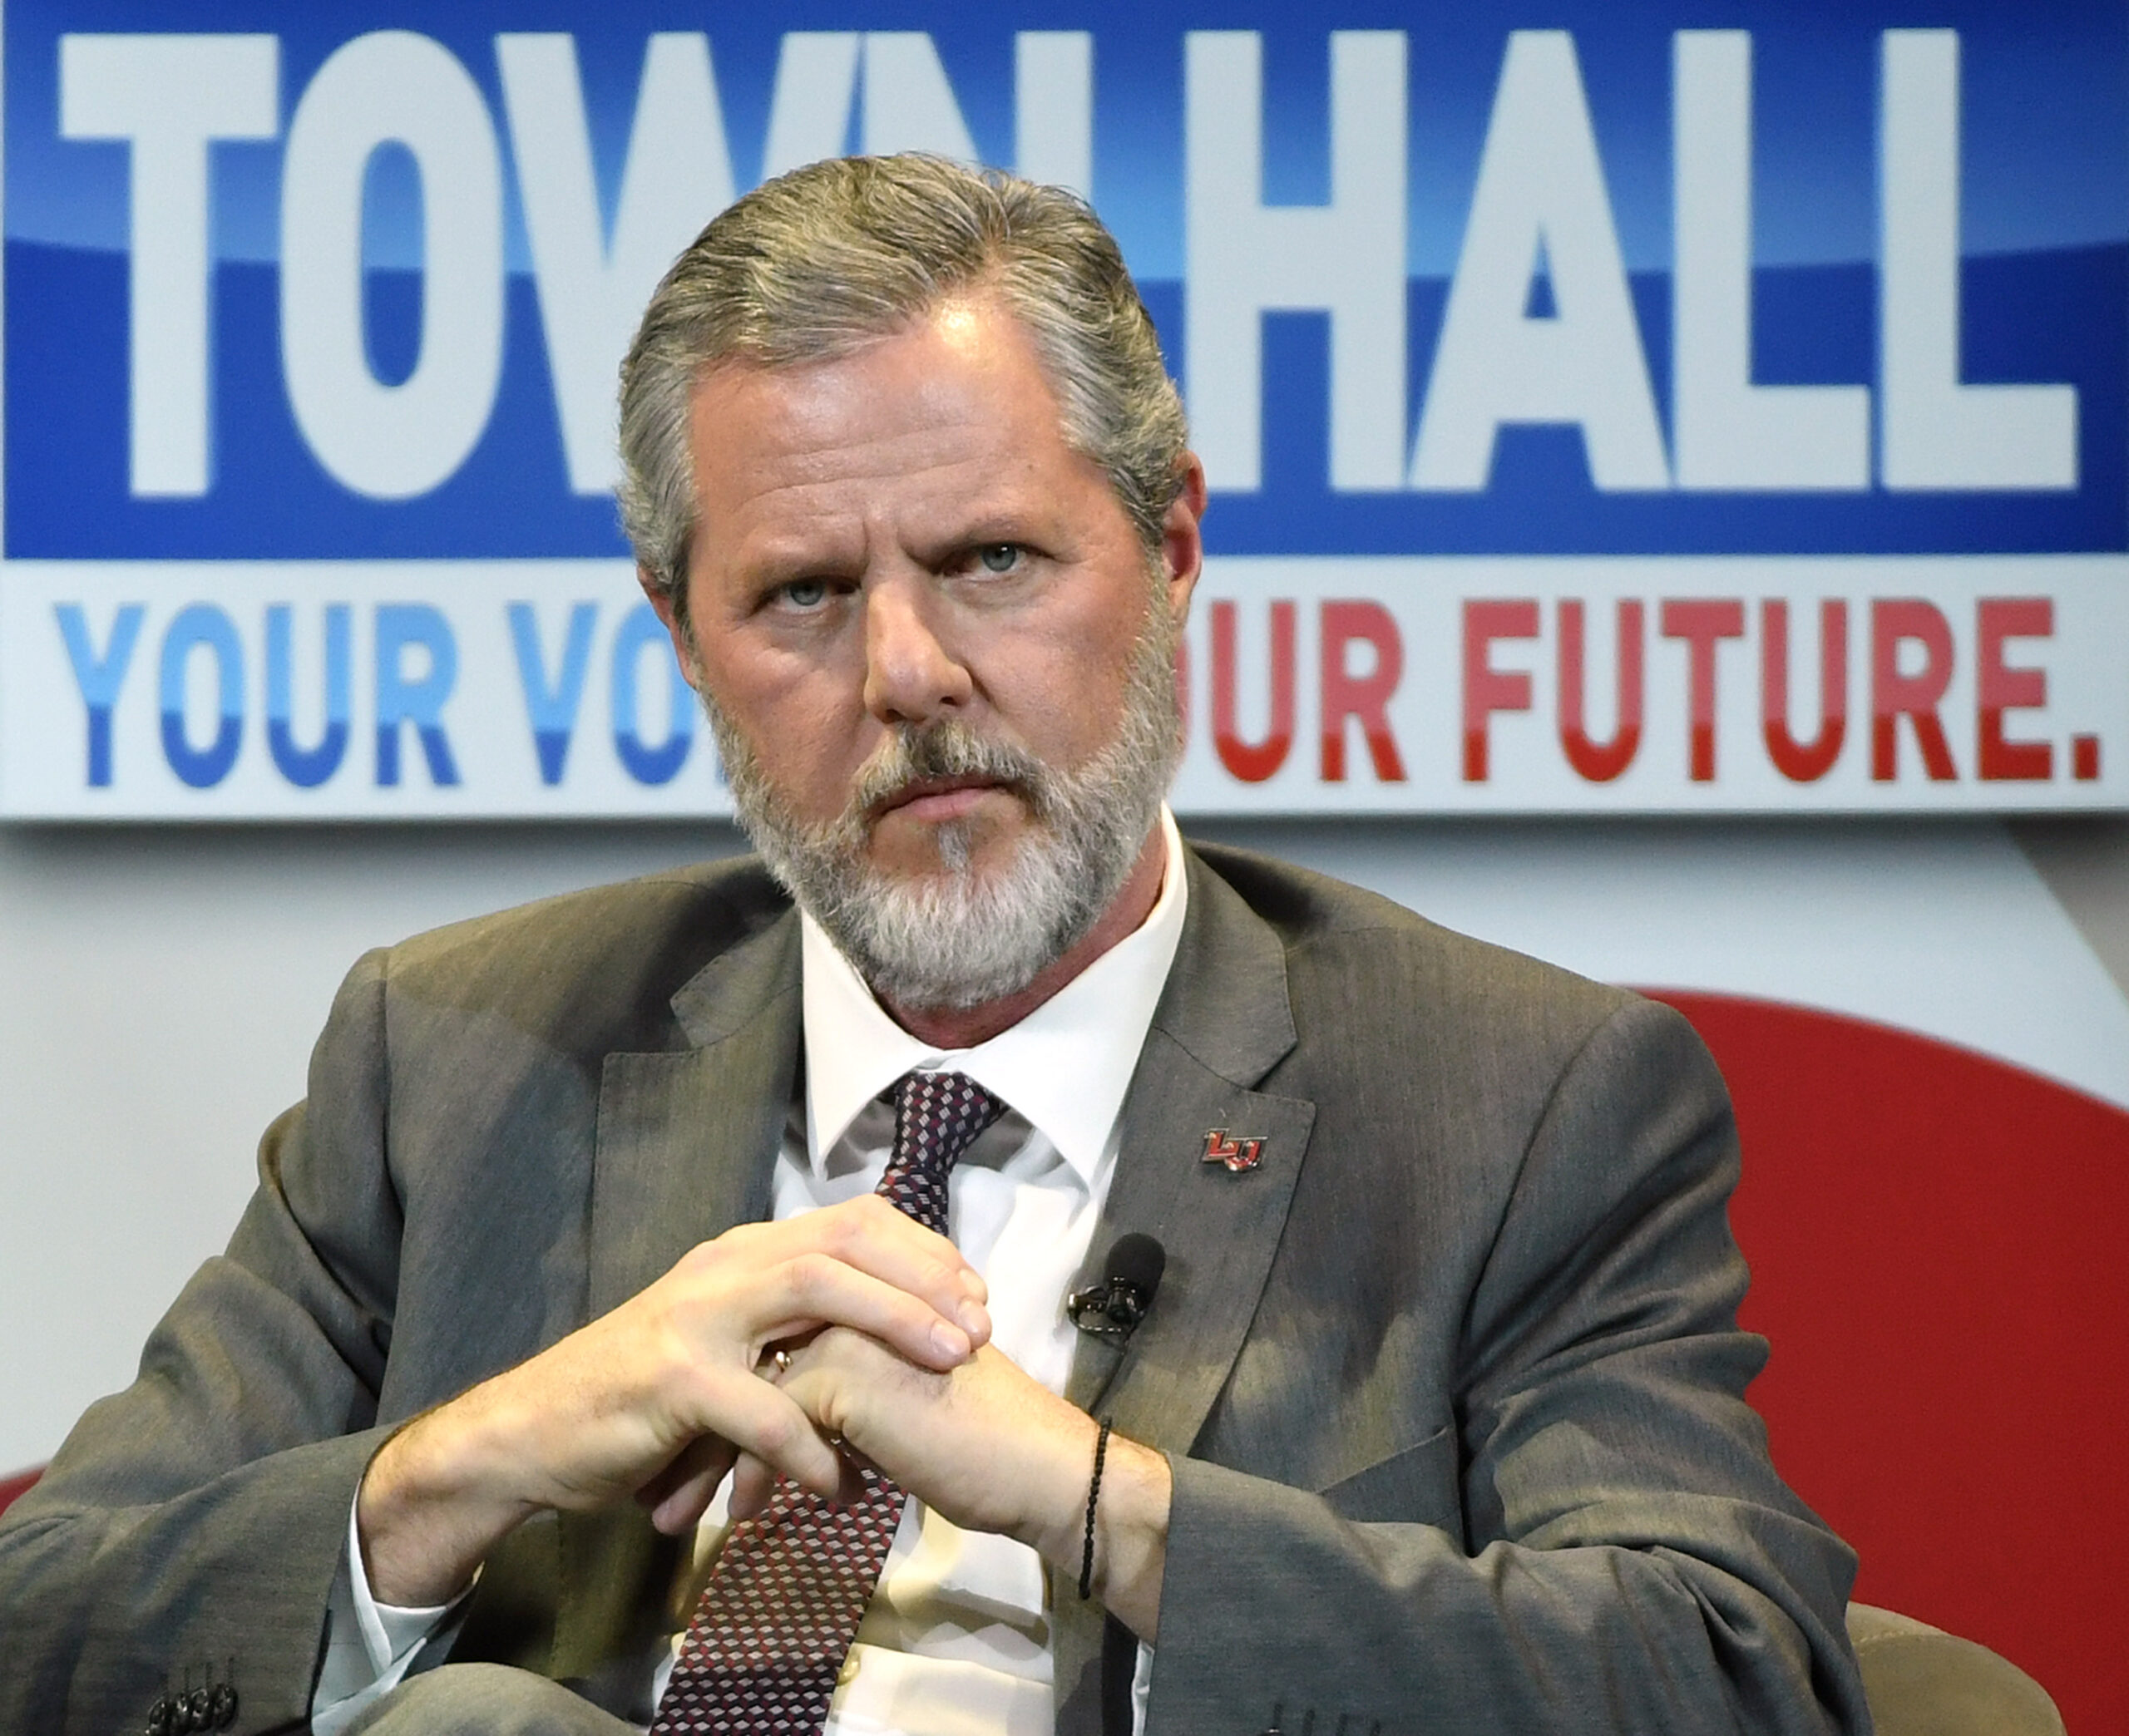 Jerry Falwell Sues Liberty University For Defaming Him At The Behest Of … The Lincoln Project?